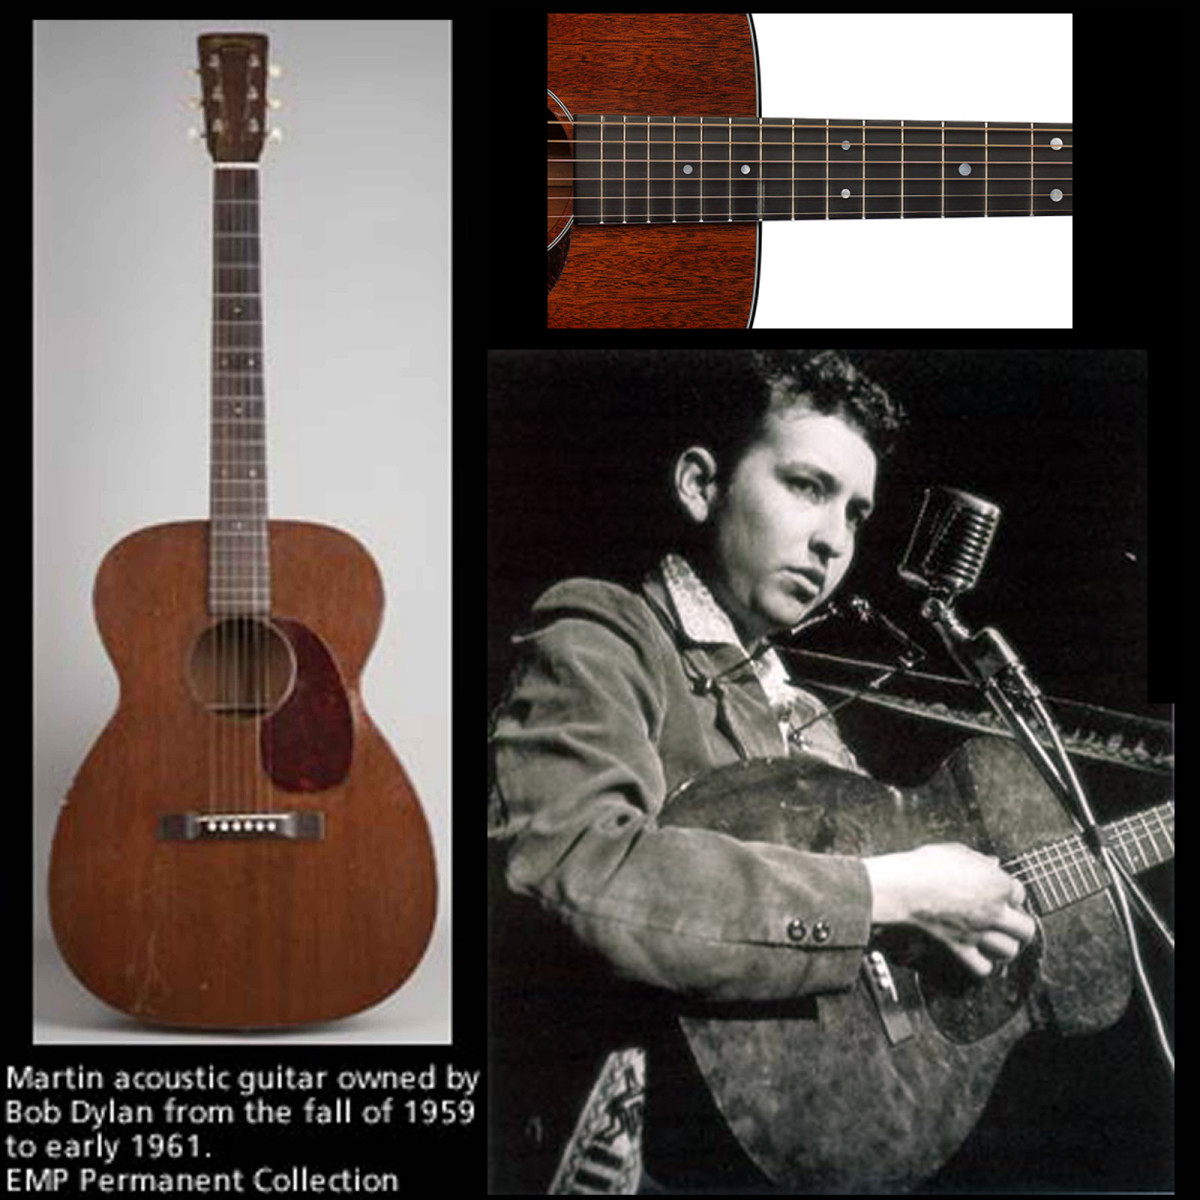 Bob Dylan and Martin Acoustic Guitars - The Martin 00-17, and The Martin 00-15.